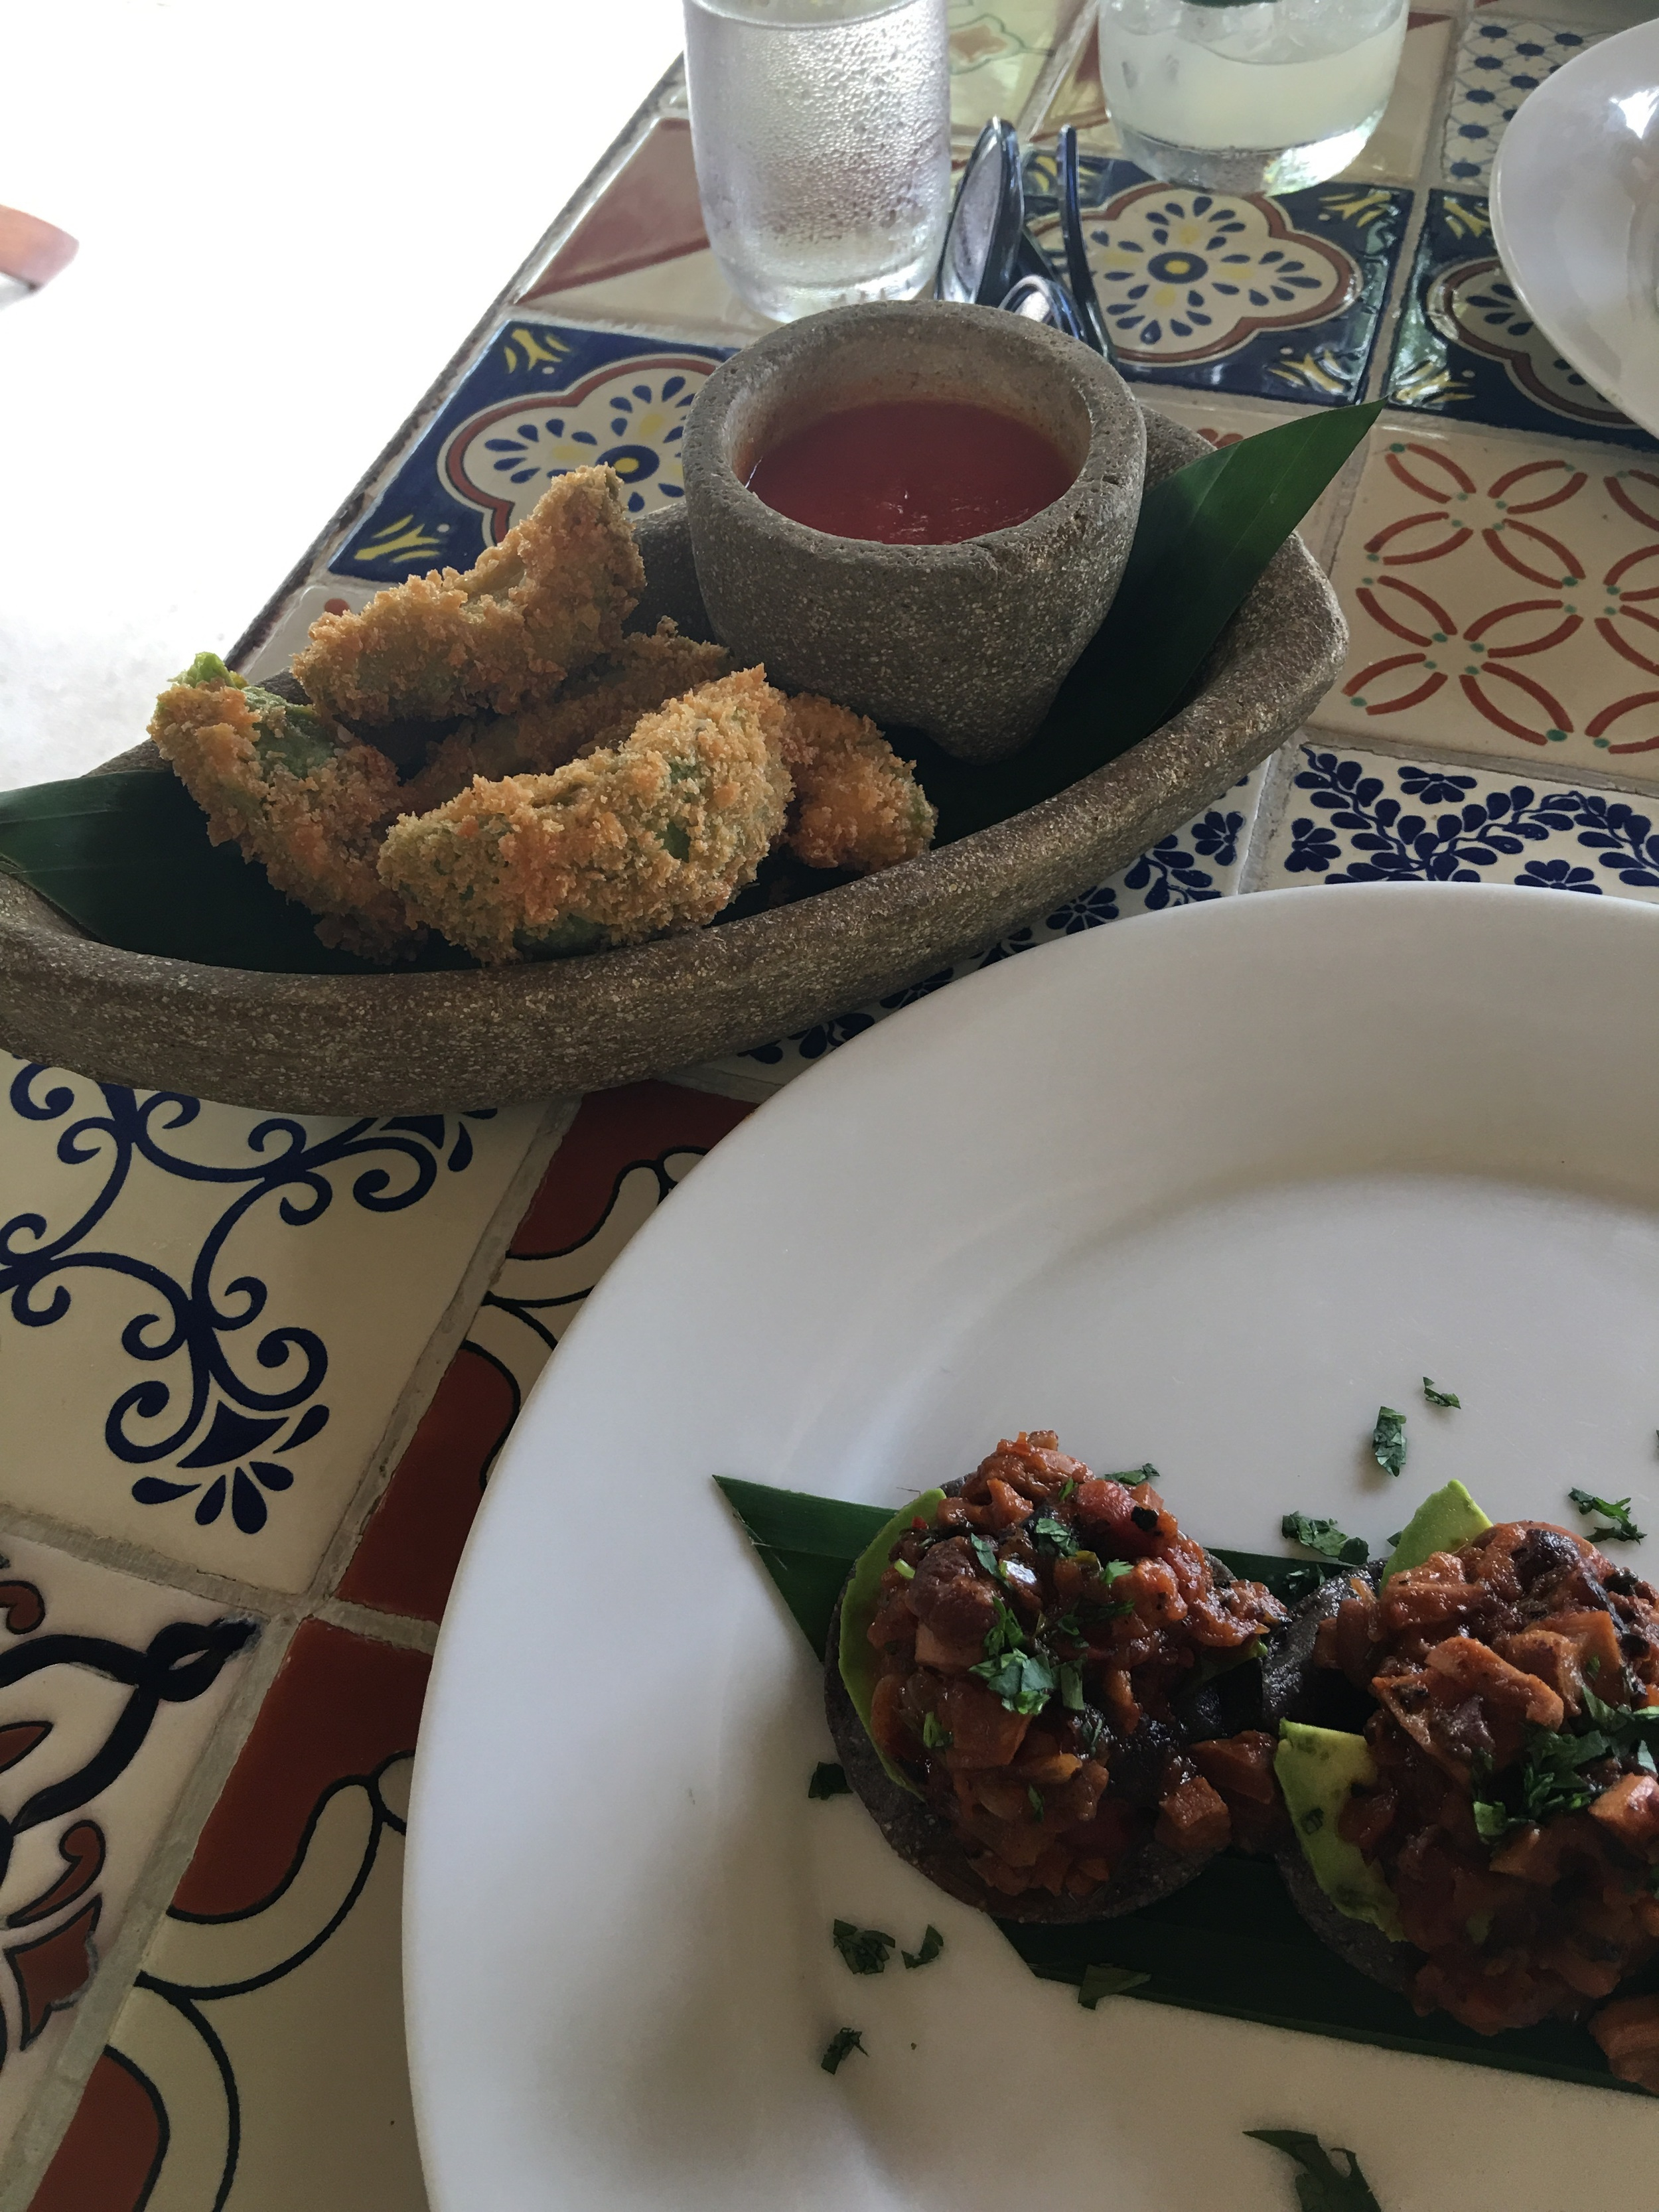 Avocado fries and  braised octopus tostaditas